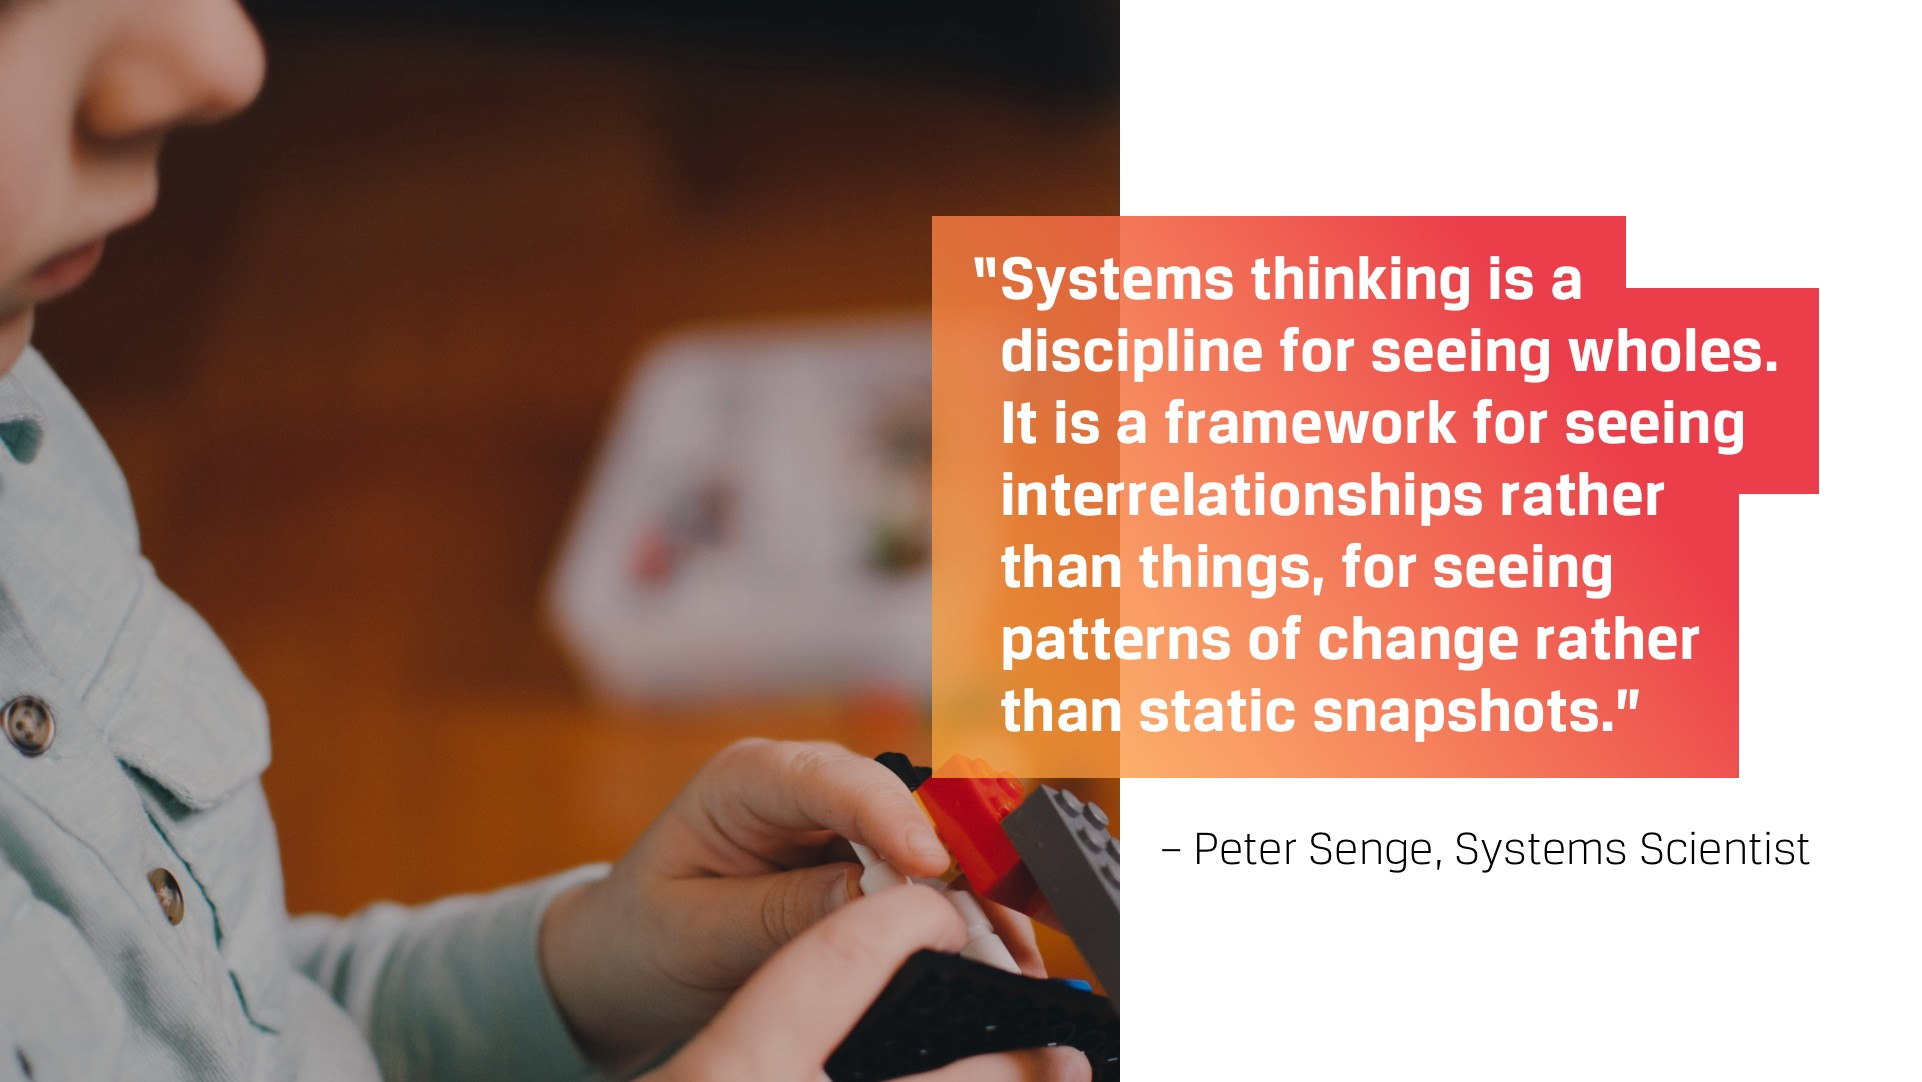 Systems thinking is a discipline for seeing wholes… for seeing interrelationships rather than things.—Peter Senge